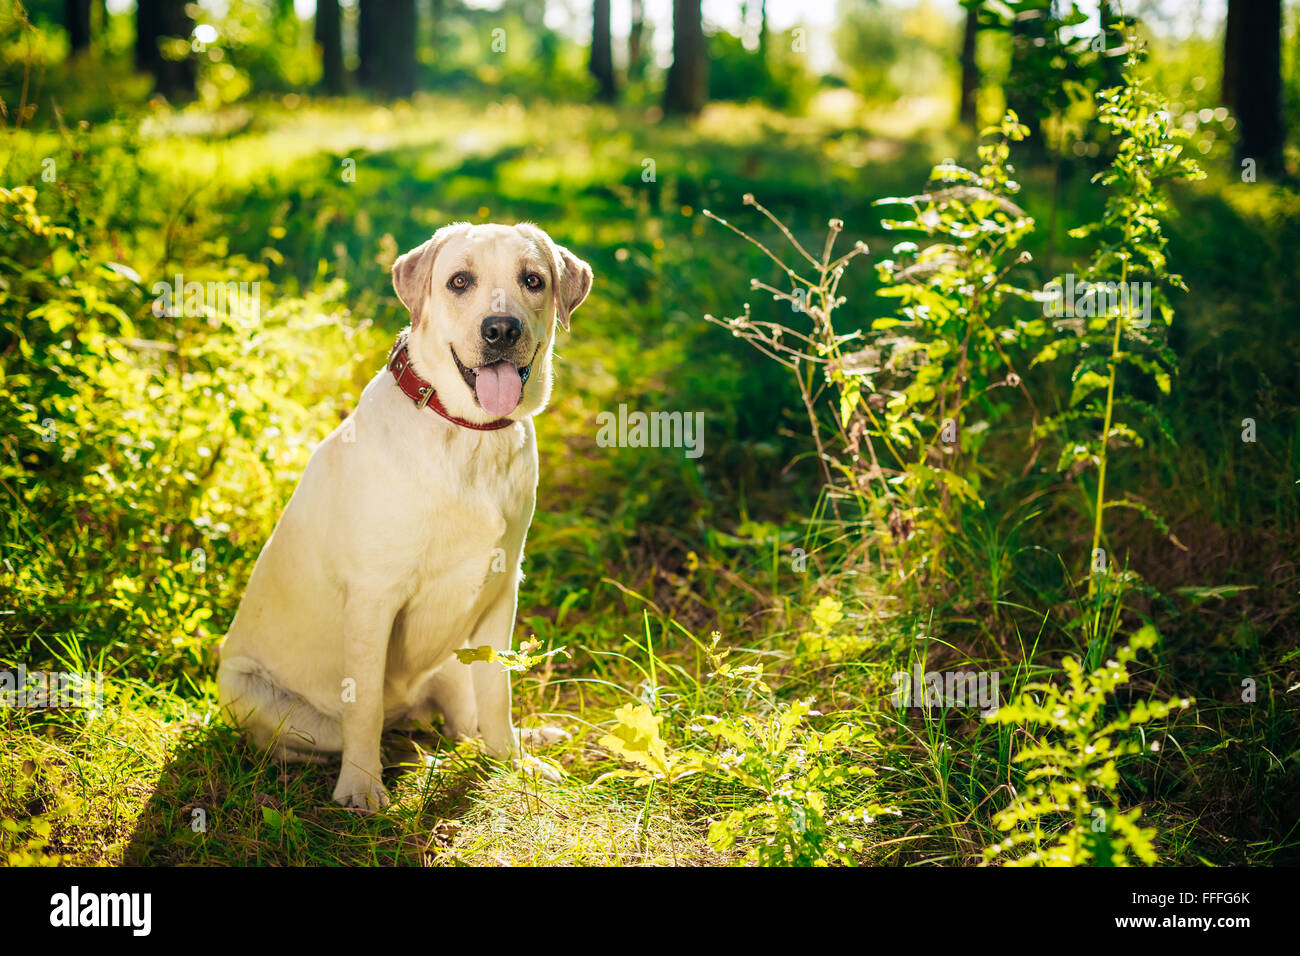 White Labrador Retriever Dog Sitting In Green Grass, Park - Stock Image